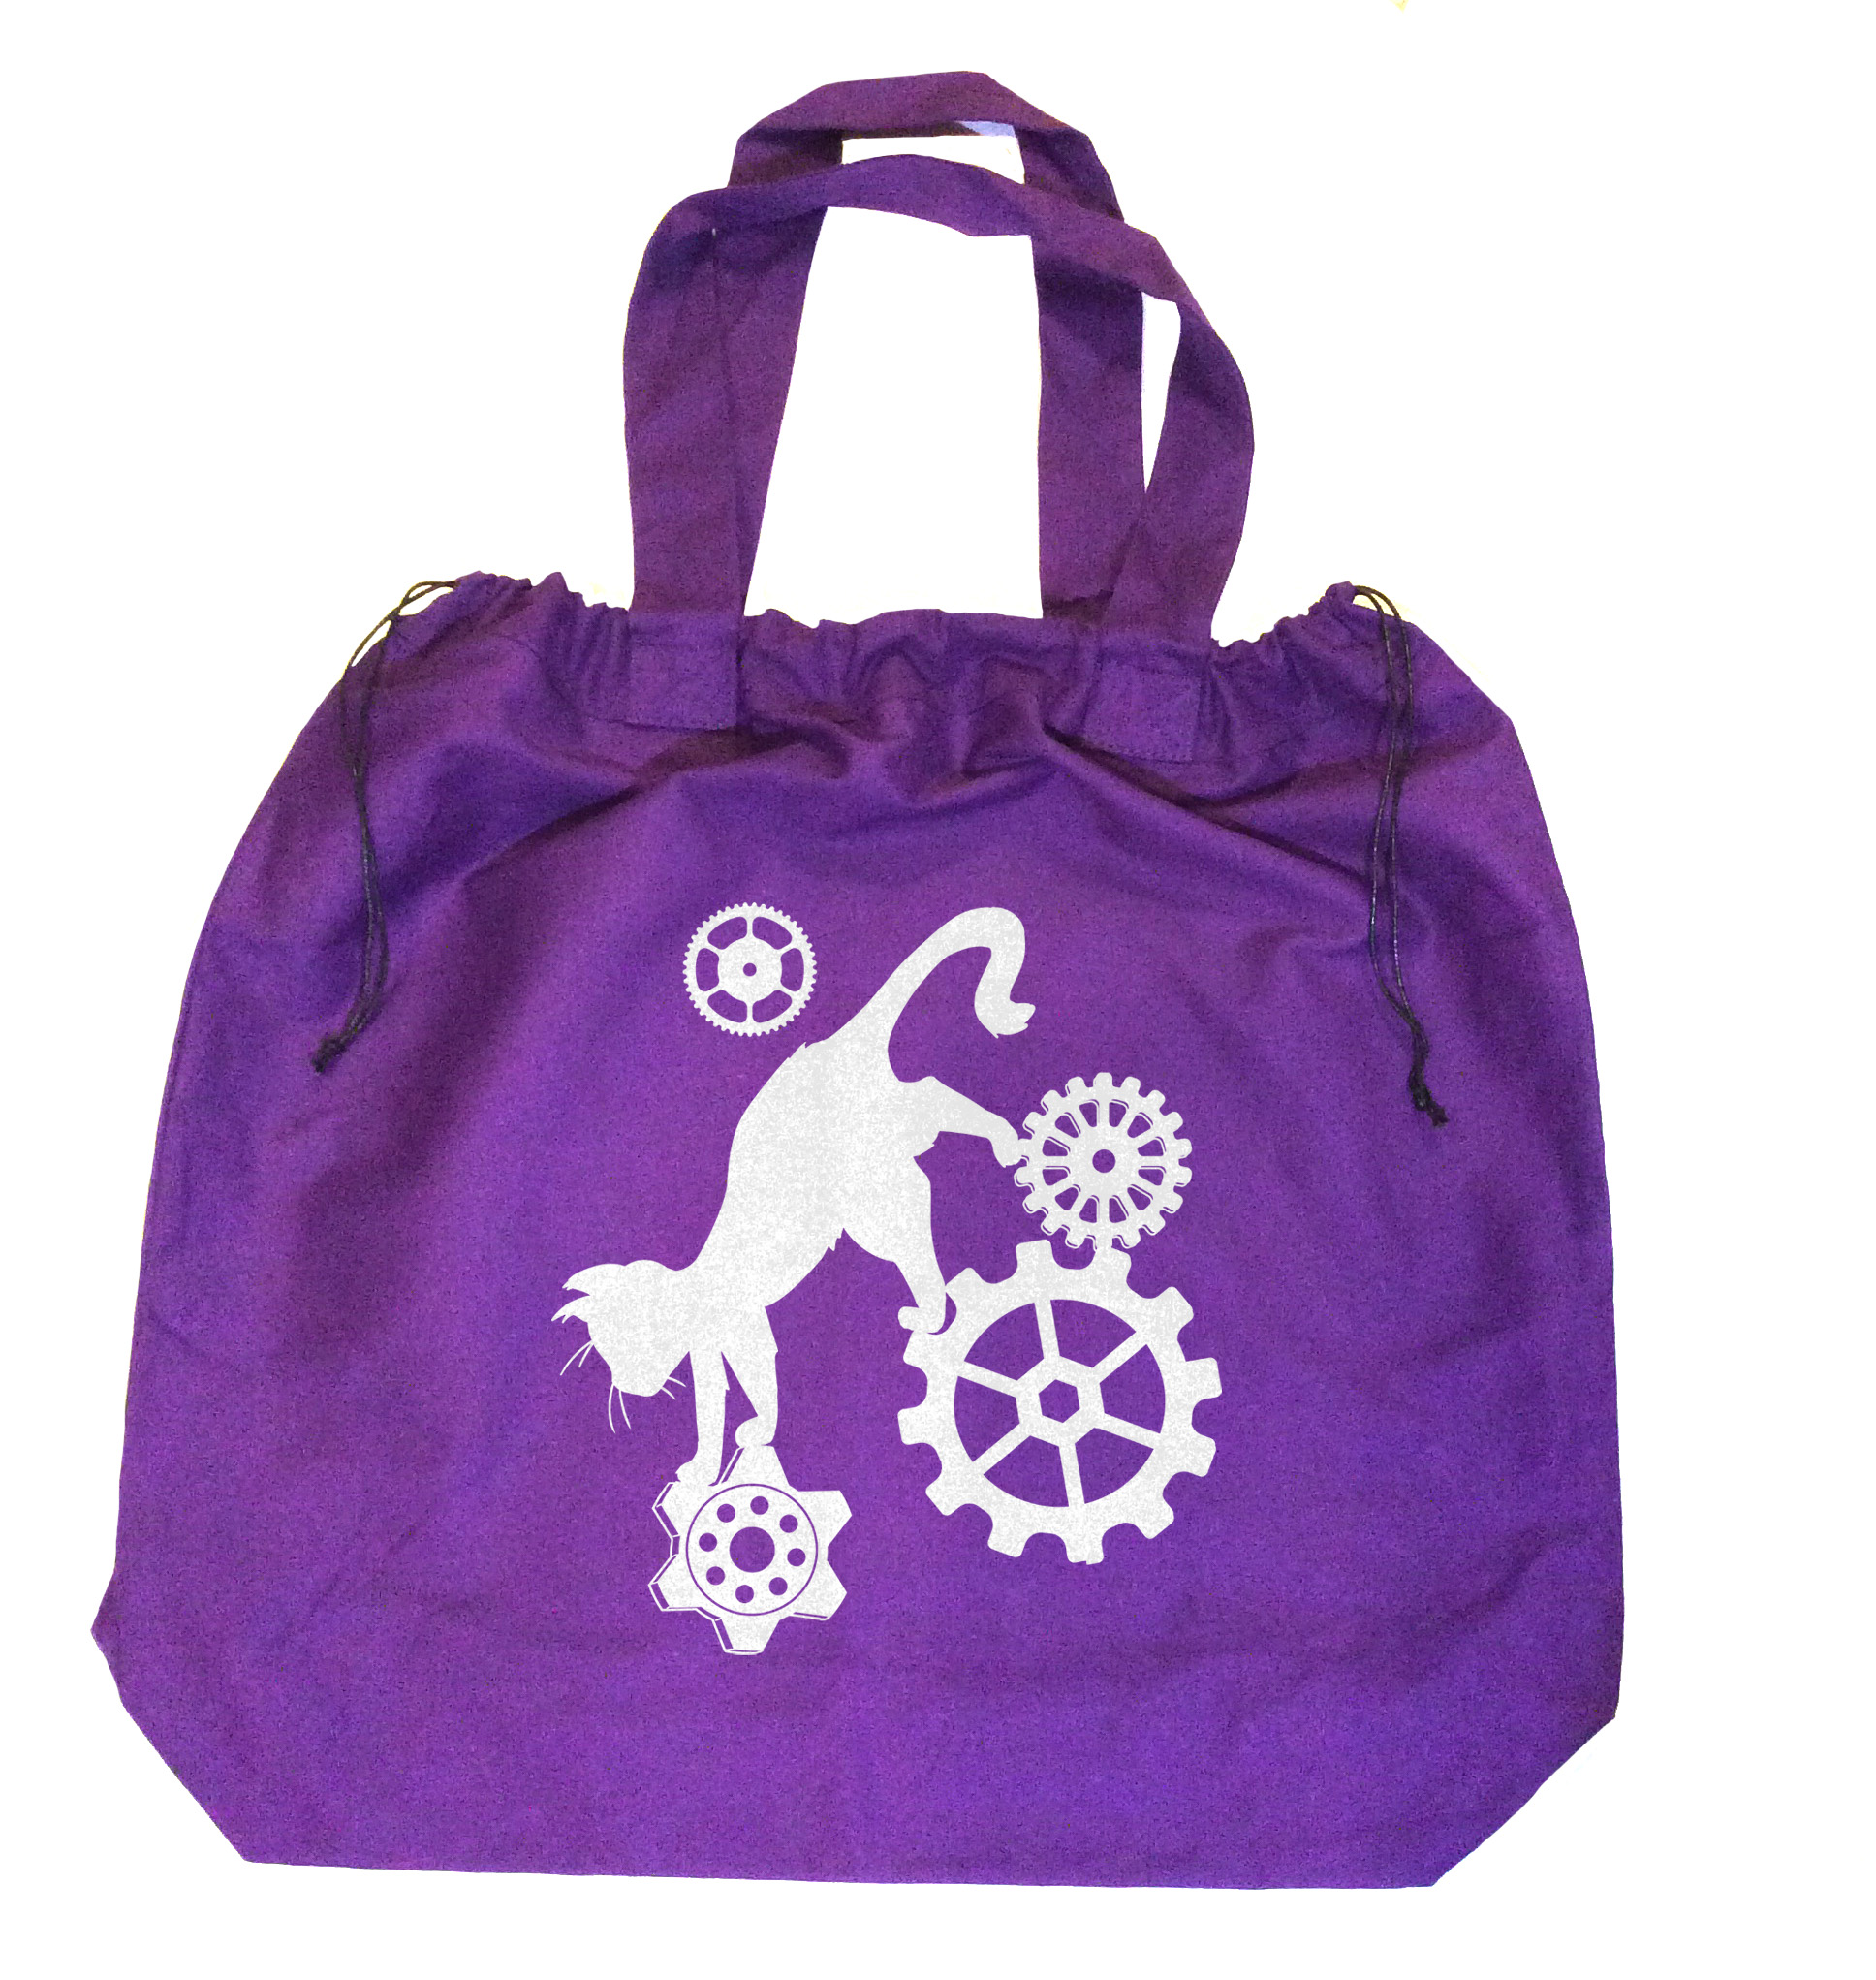 Steampunk Cat Extra-Large Drawstring Beach Bag - Purple